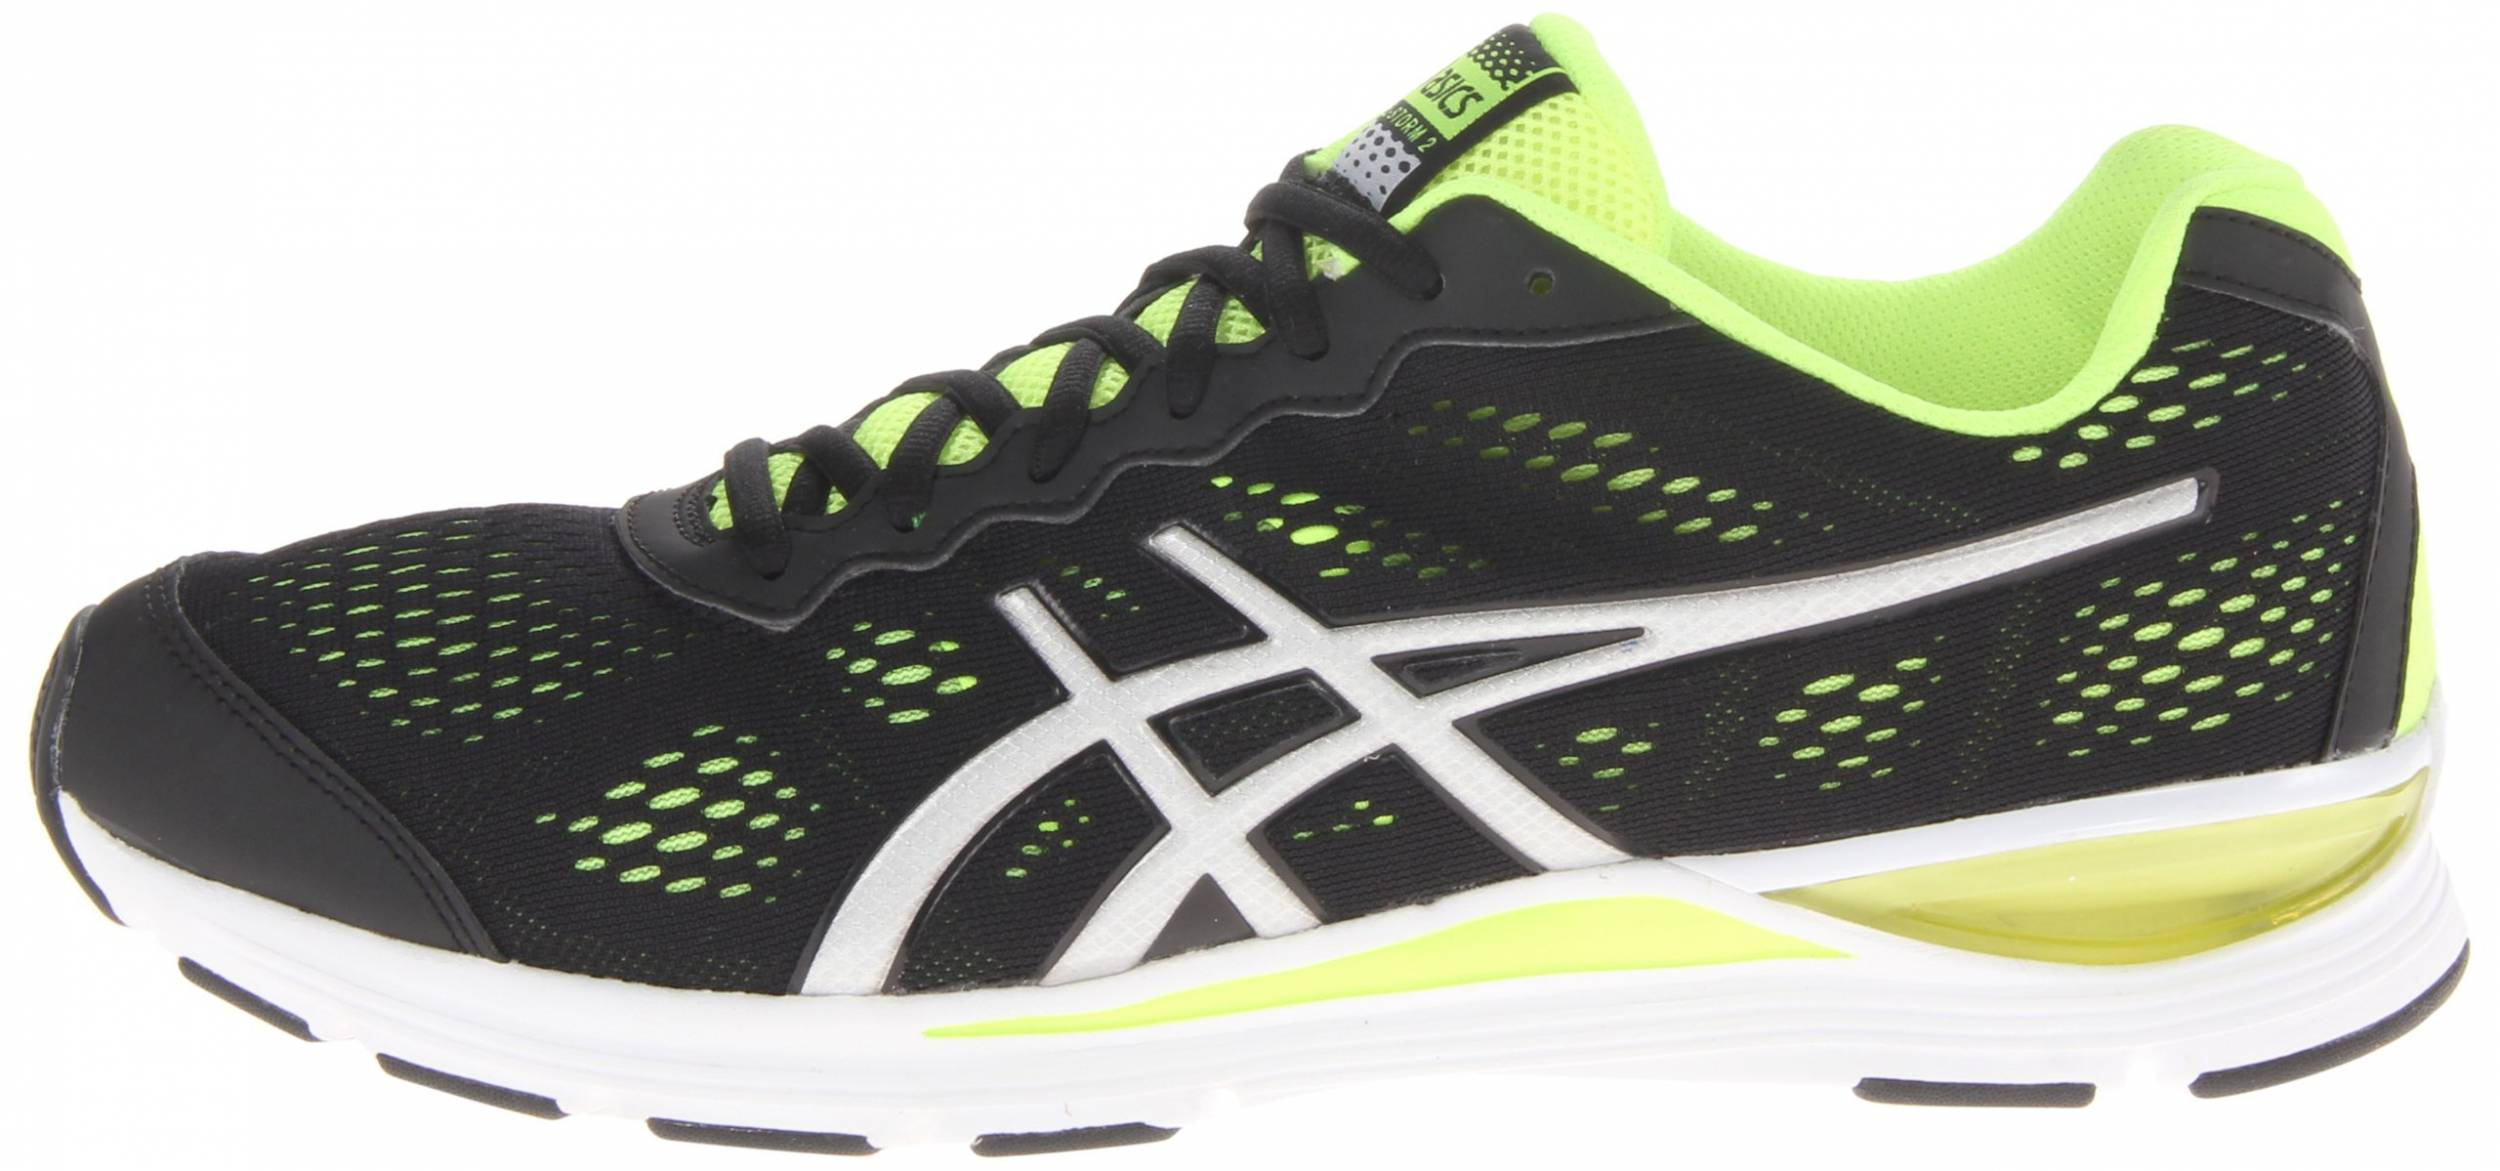 Only $53 + Review of Asics Gel Storm 2